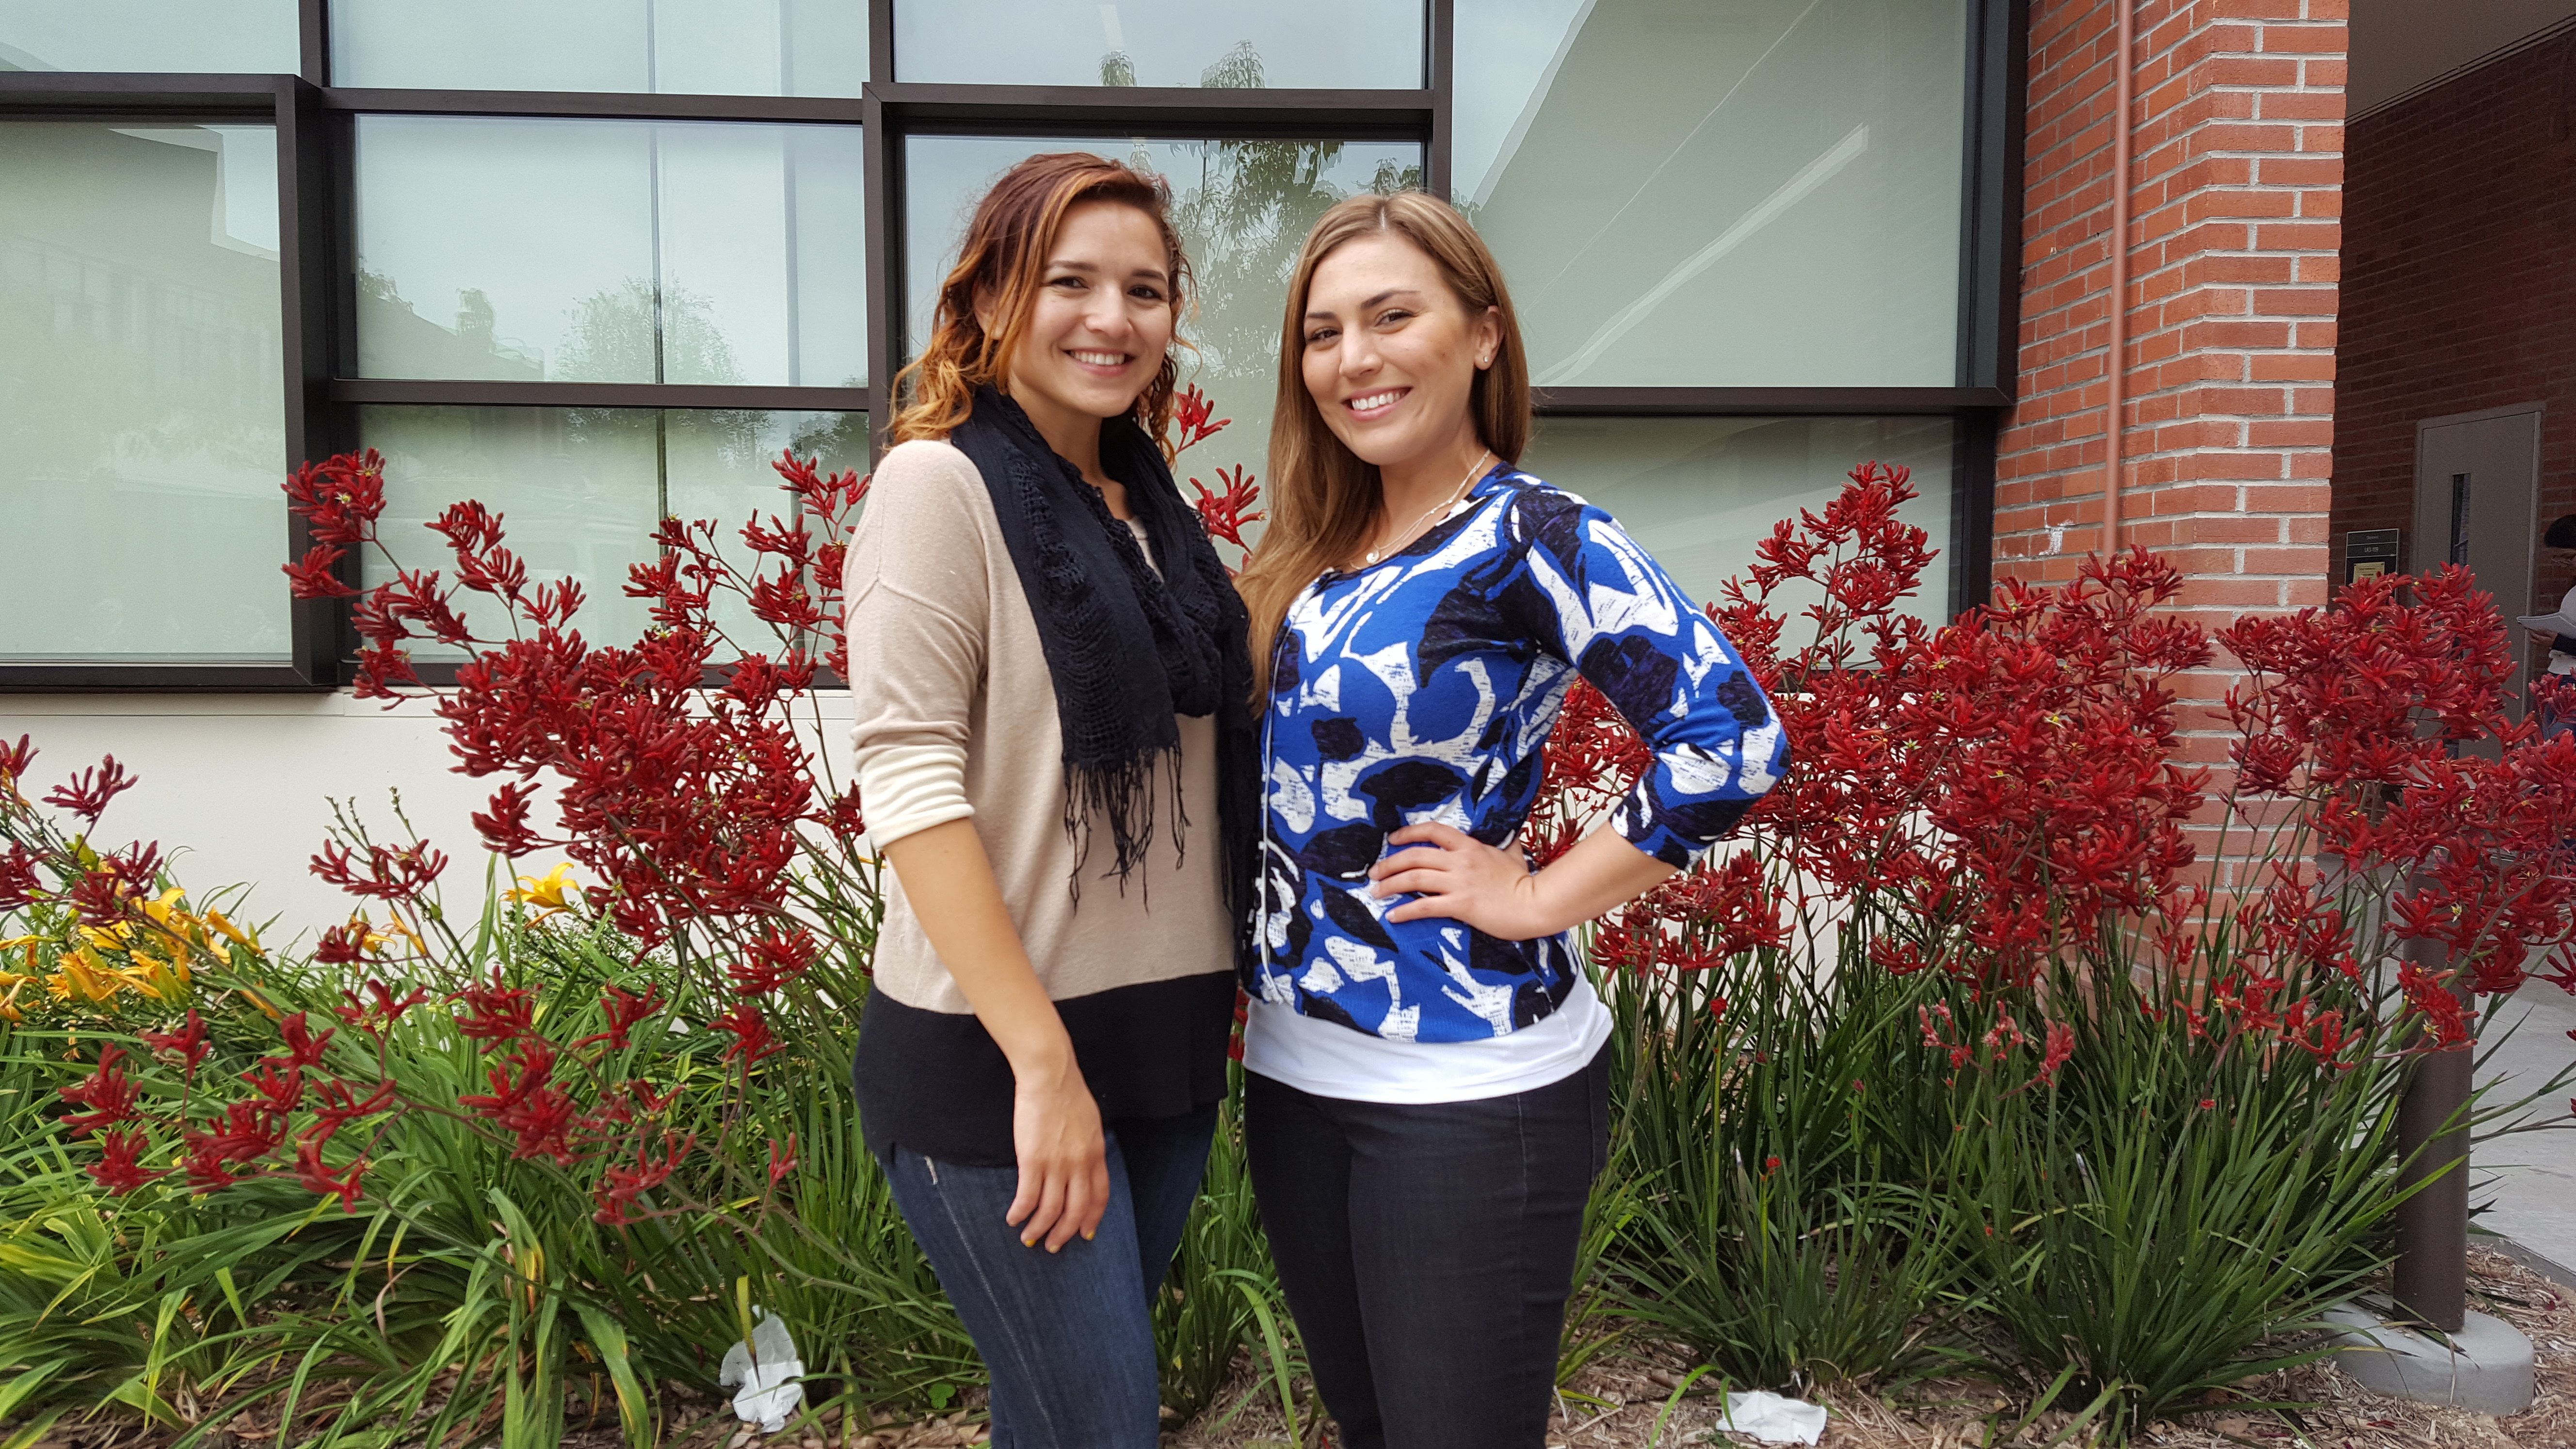 Nadine Ruiz and Heather Teeter are the co-awardees for HDEV Student of the Month! Click on the photo to read more.